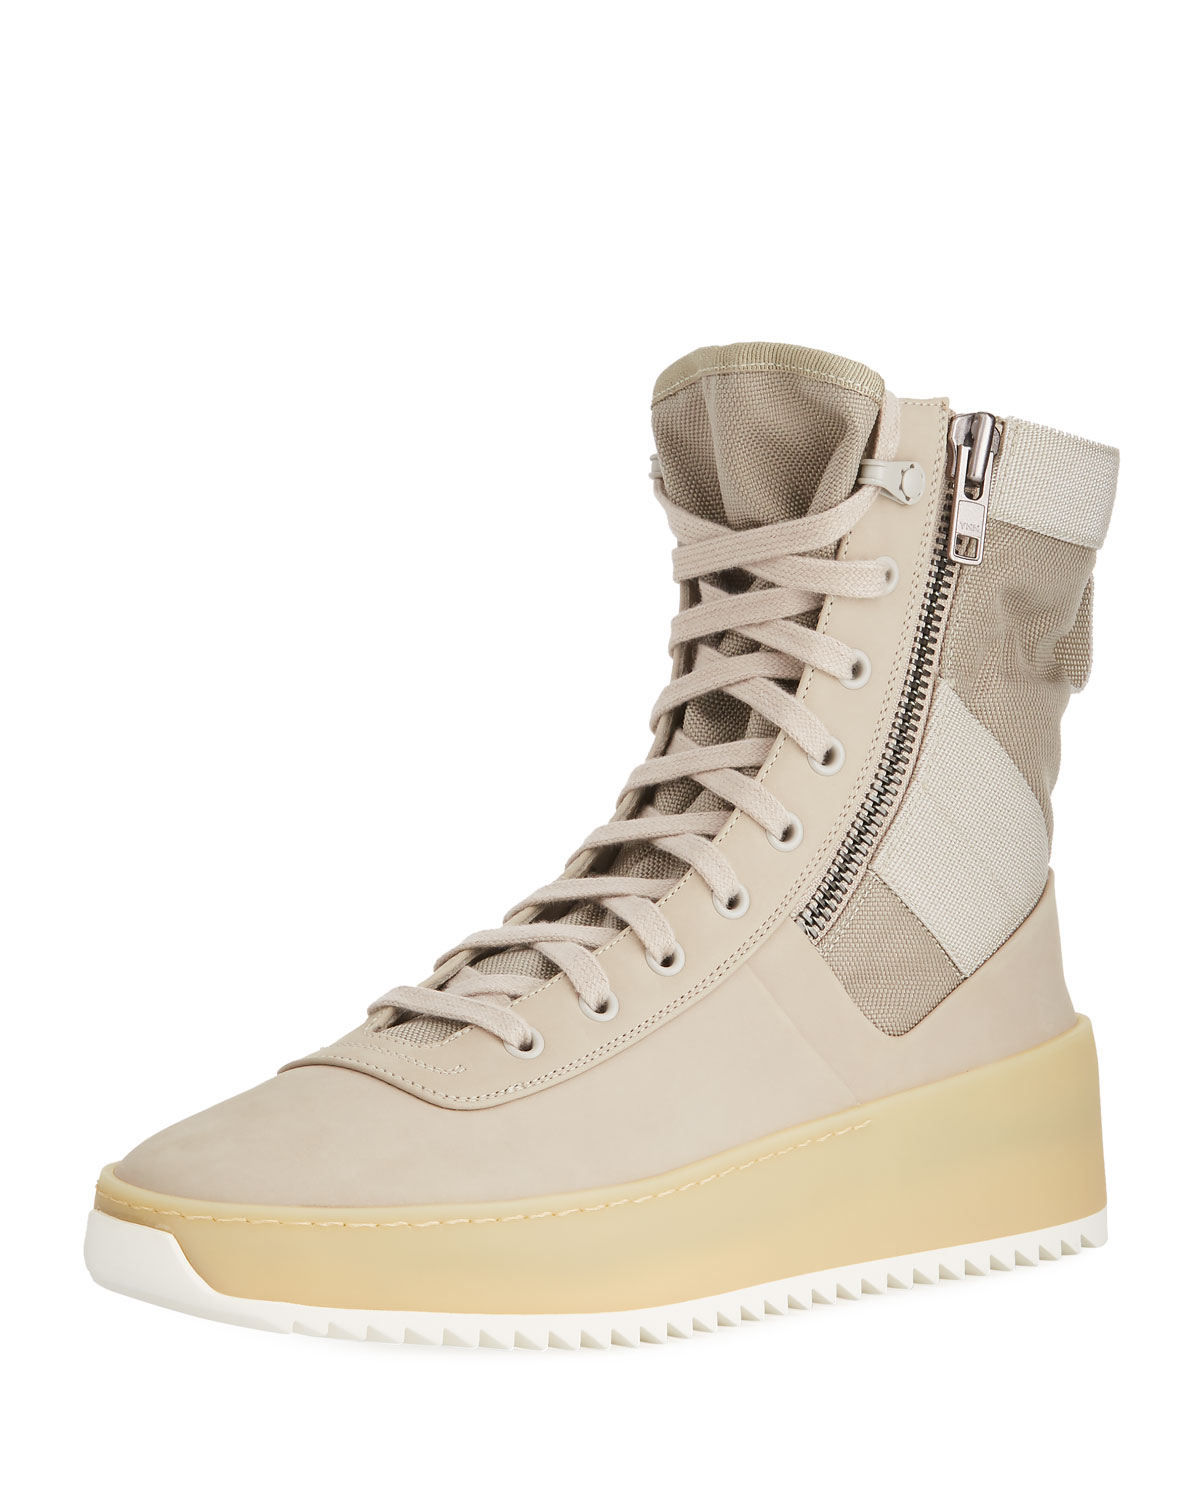 best cheap 4364c aa710 Men's Leather High-Top Military Sneakers, Beige